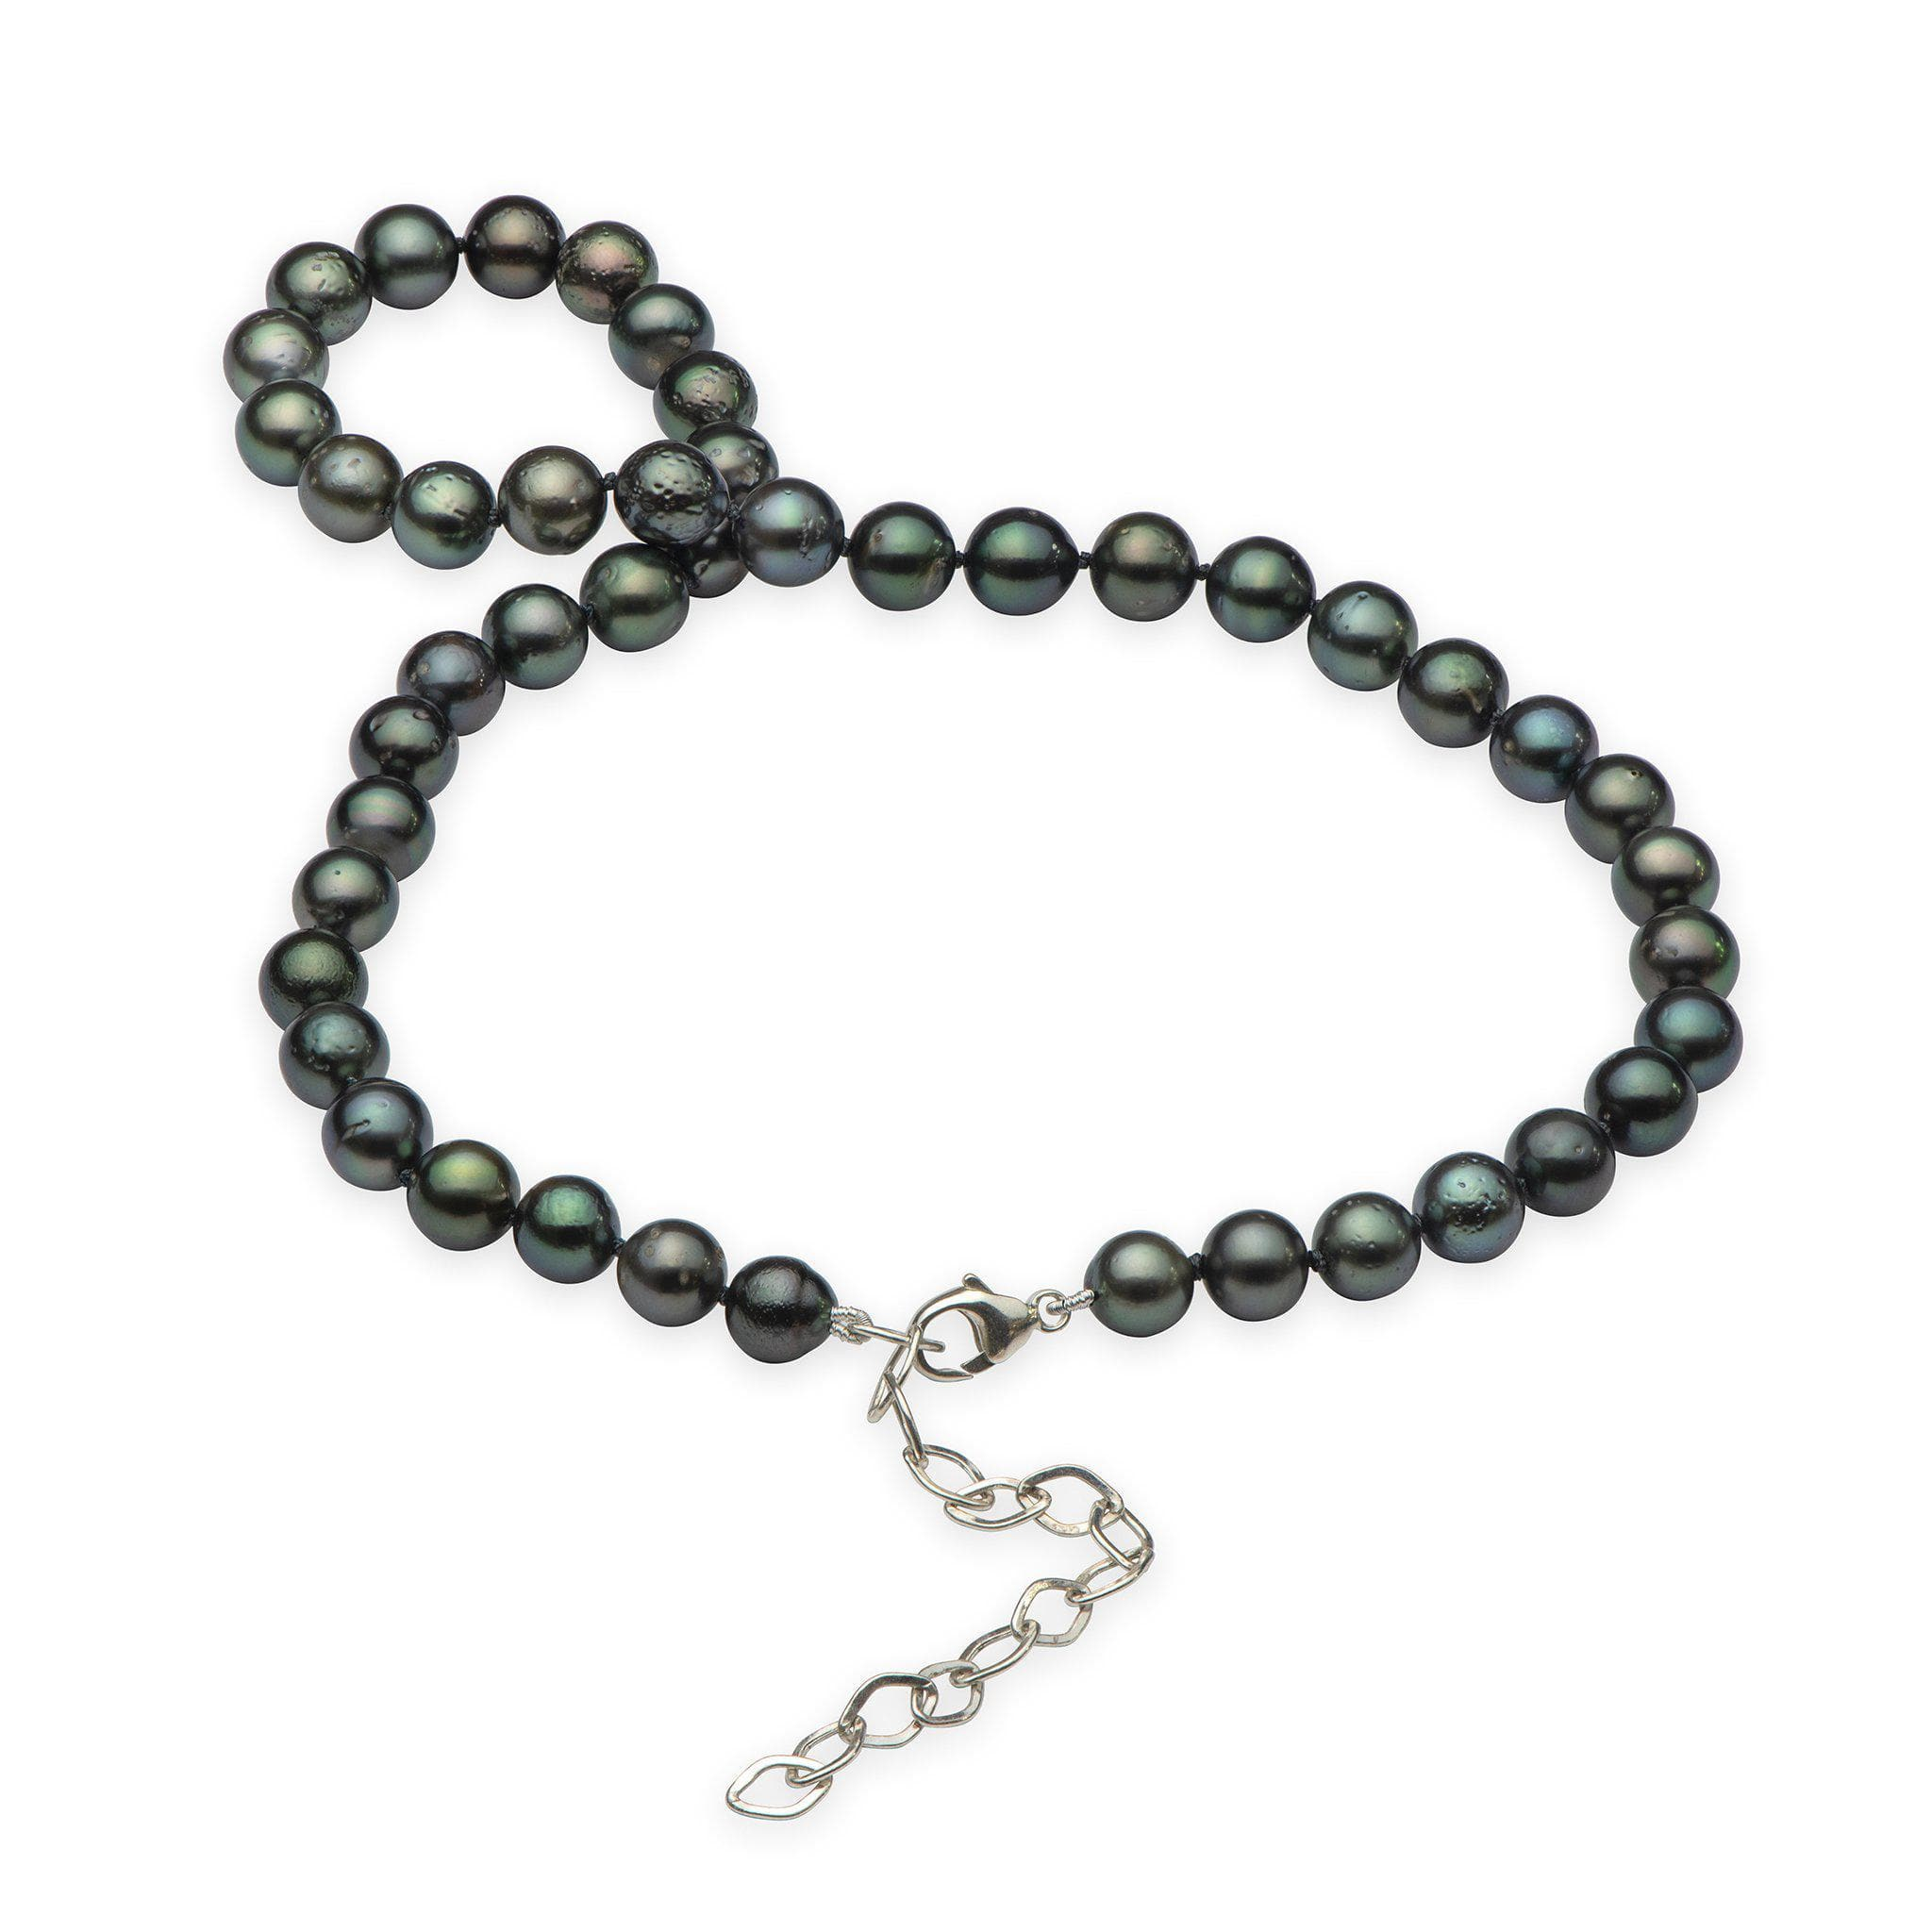 Tahitian Black Pearl (7-8mm) Strand in Sterling Silver